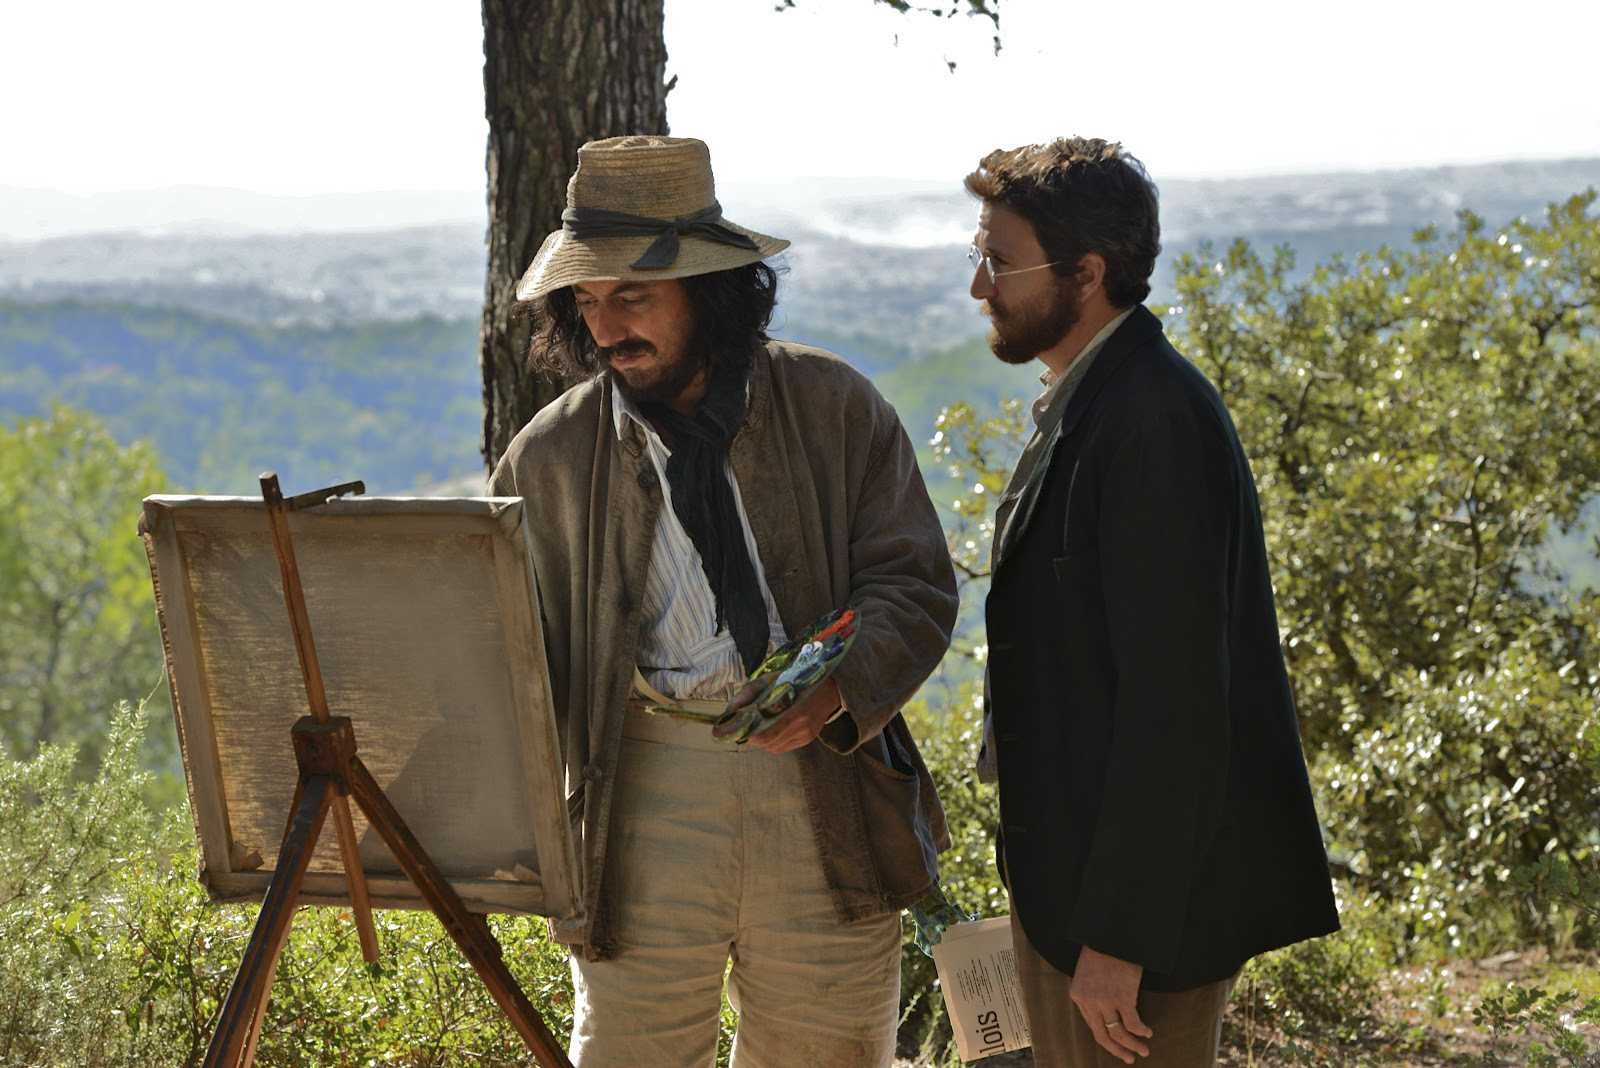 """""""Cezanne et Moi"""" is a film about the friendship between painter Paul Cezanne and author Emile Zola that arises when Cezanne challenges Zola about his recent work. The film will open on April 7 with a national rollout to follow."""